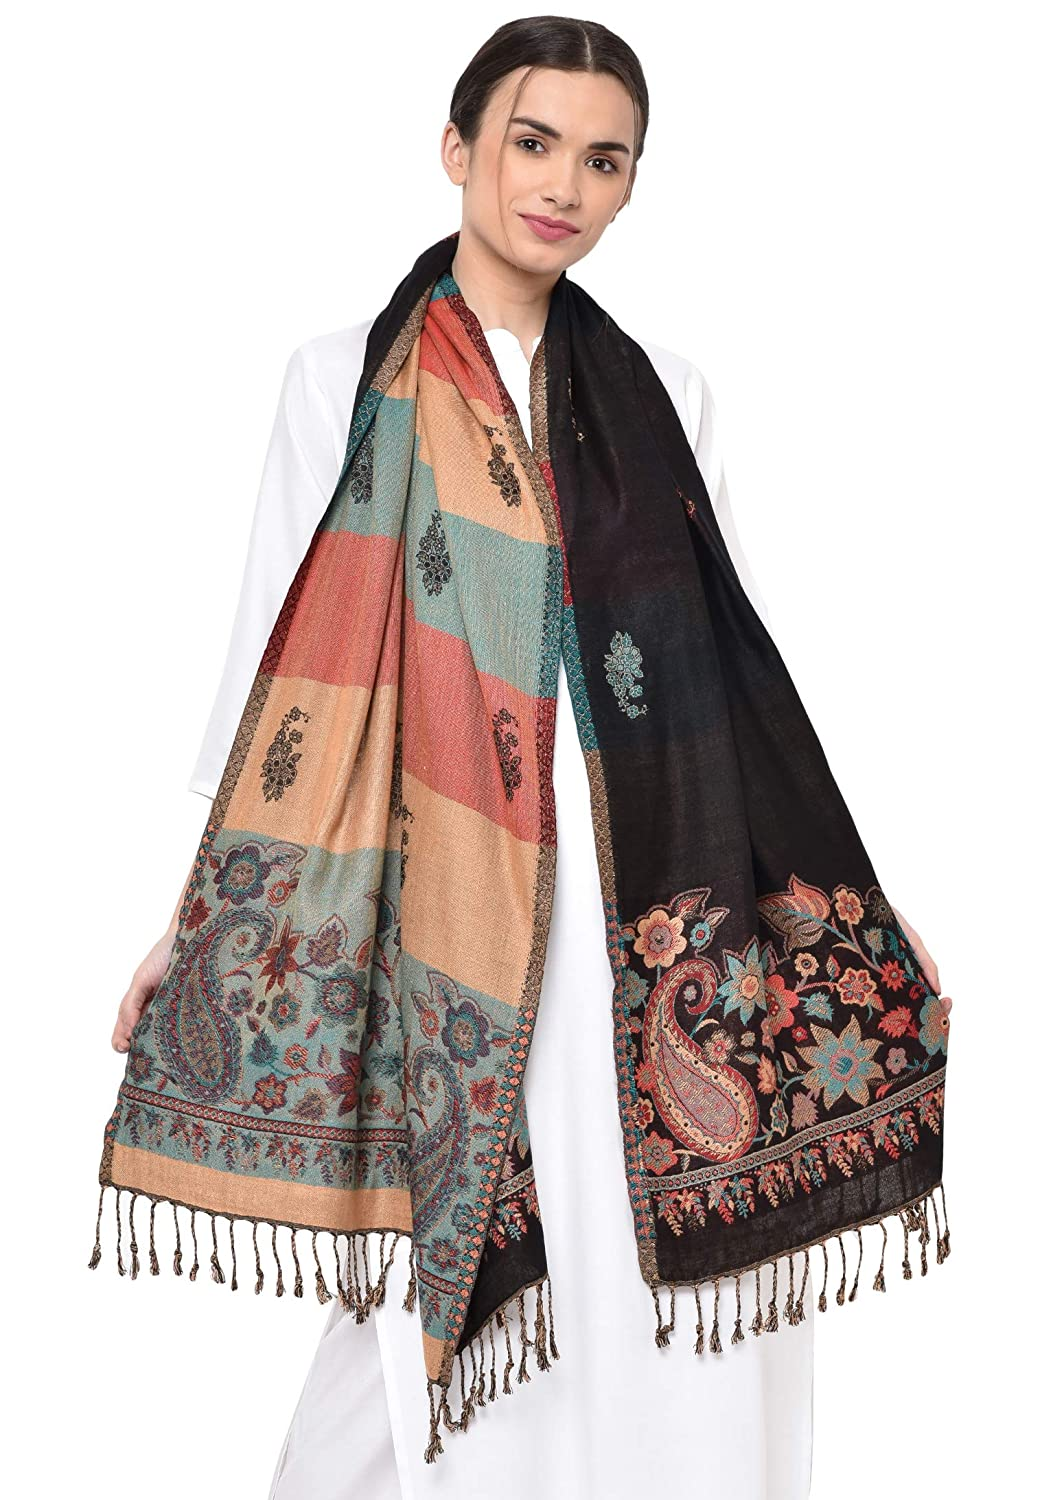 Weavers Villa Soft Viscose Kaju Buty Design Winter Stoles, Shawls (Black)